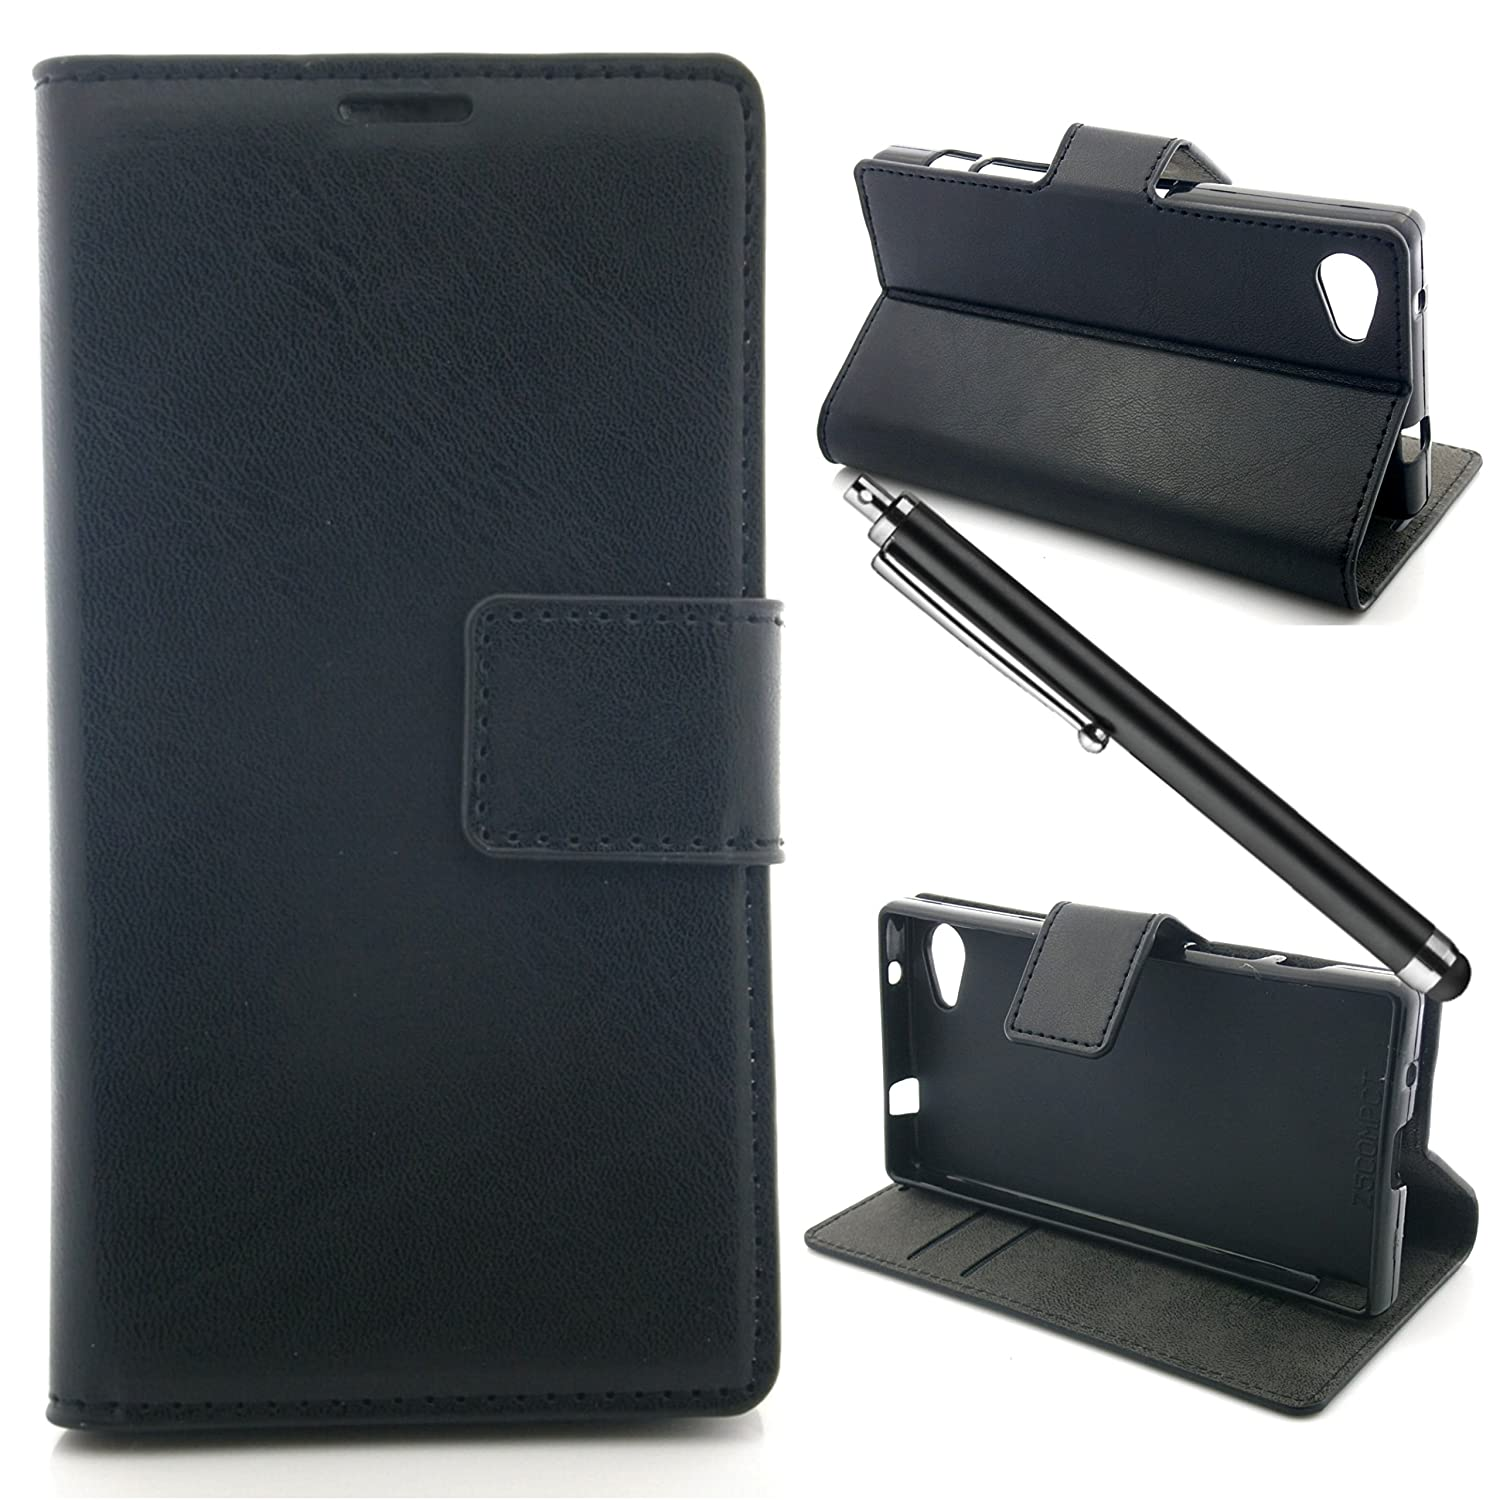 Sony Xperia Z1 Z5 Compact Mobile Phone Mobile Phone Case